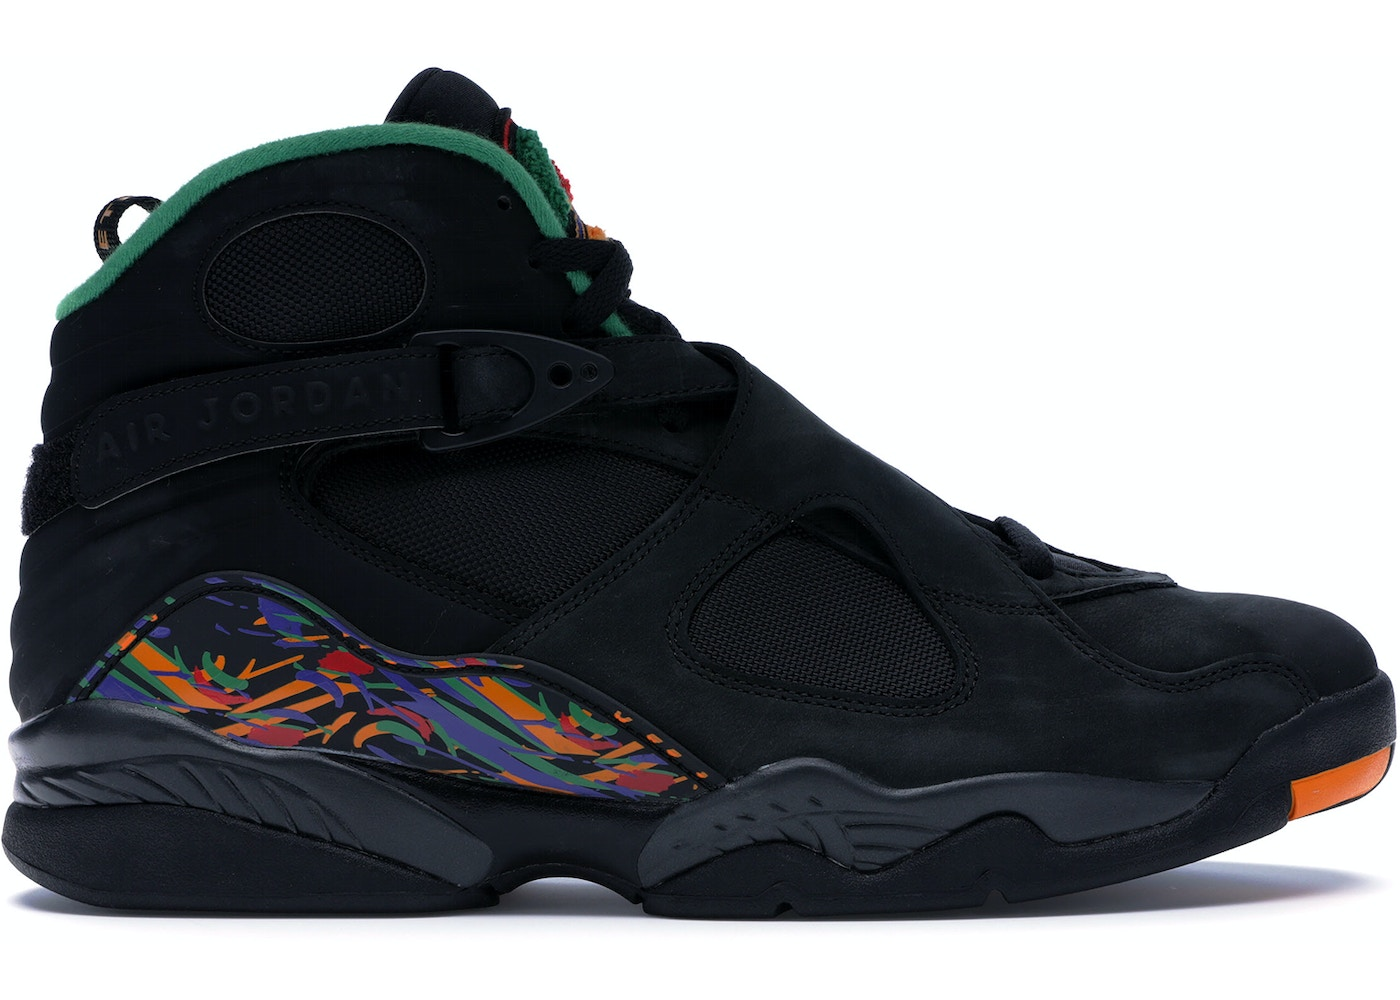 2c5fb4ea984494 Buy Air Jordan 8 Size 16 Shoes   Deadstock Sneakers